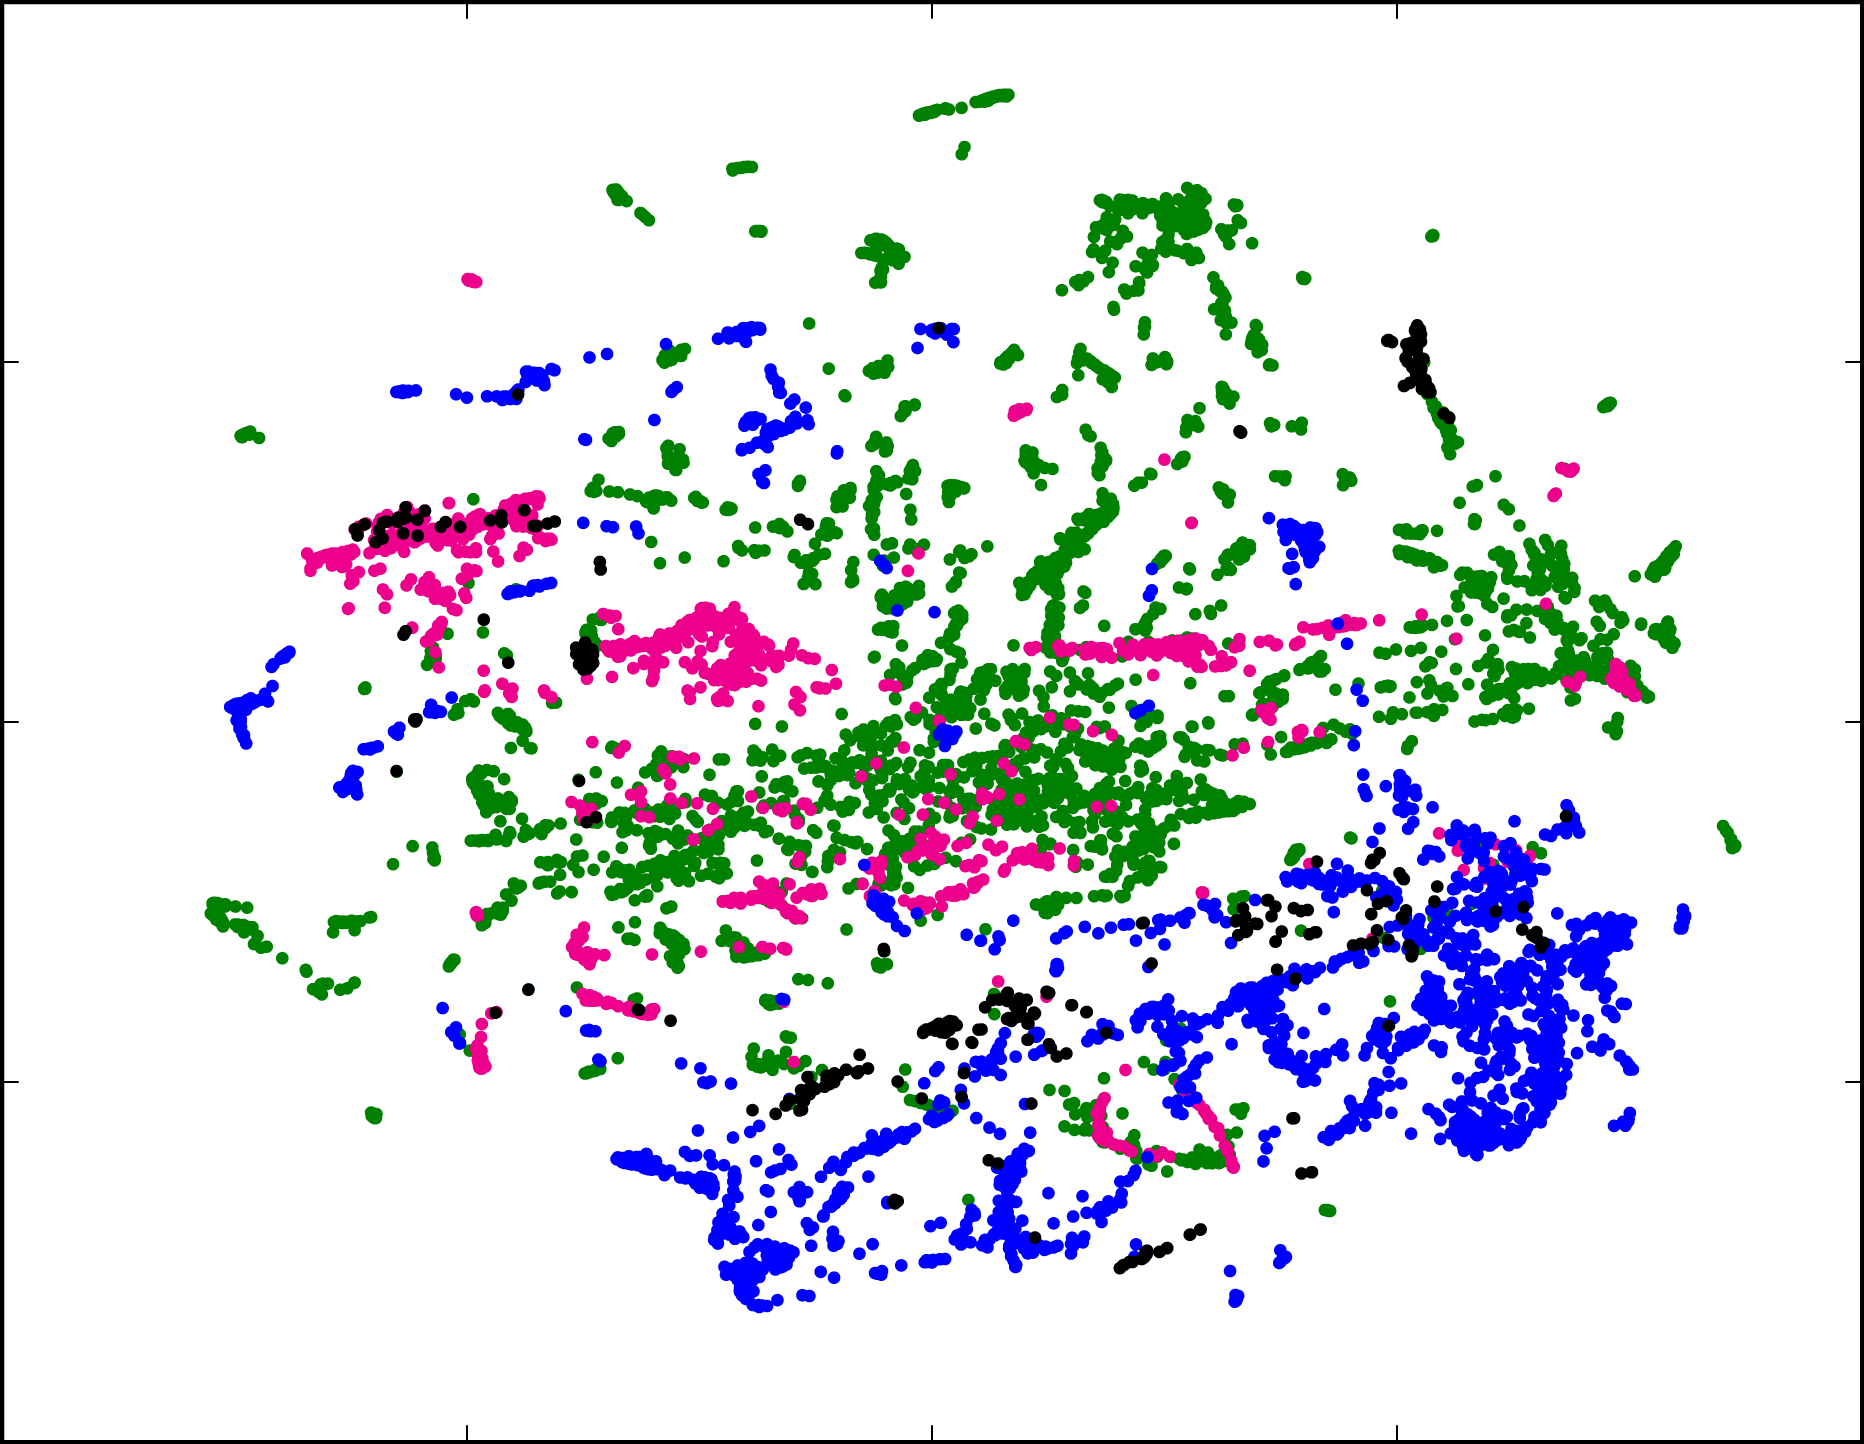 t-SNE comparing document vectors representing works of fiction, historical fiction, unofficial histories, and official histories.